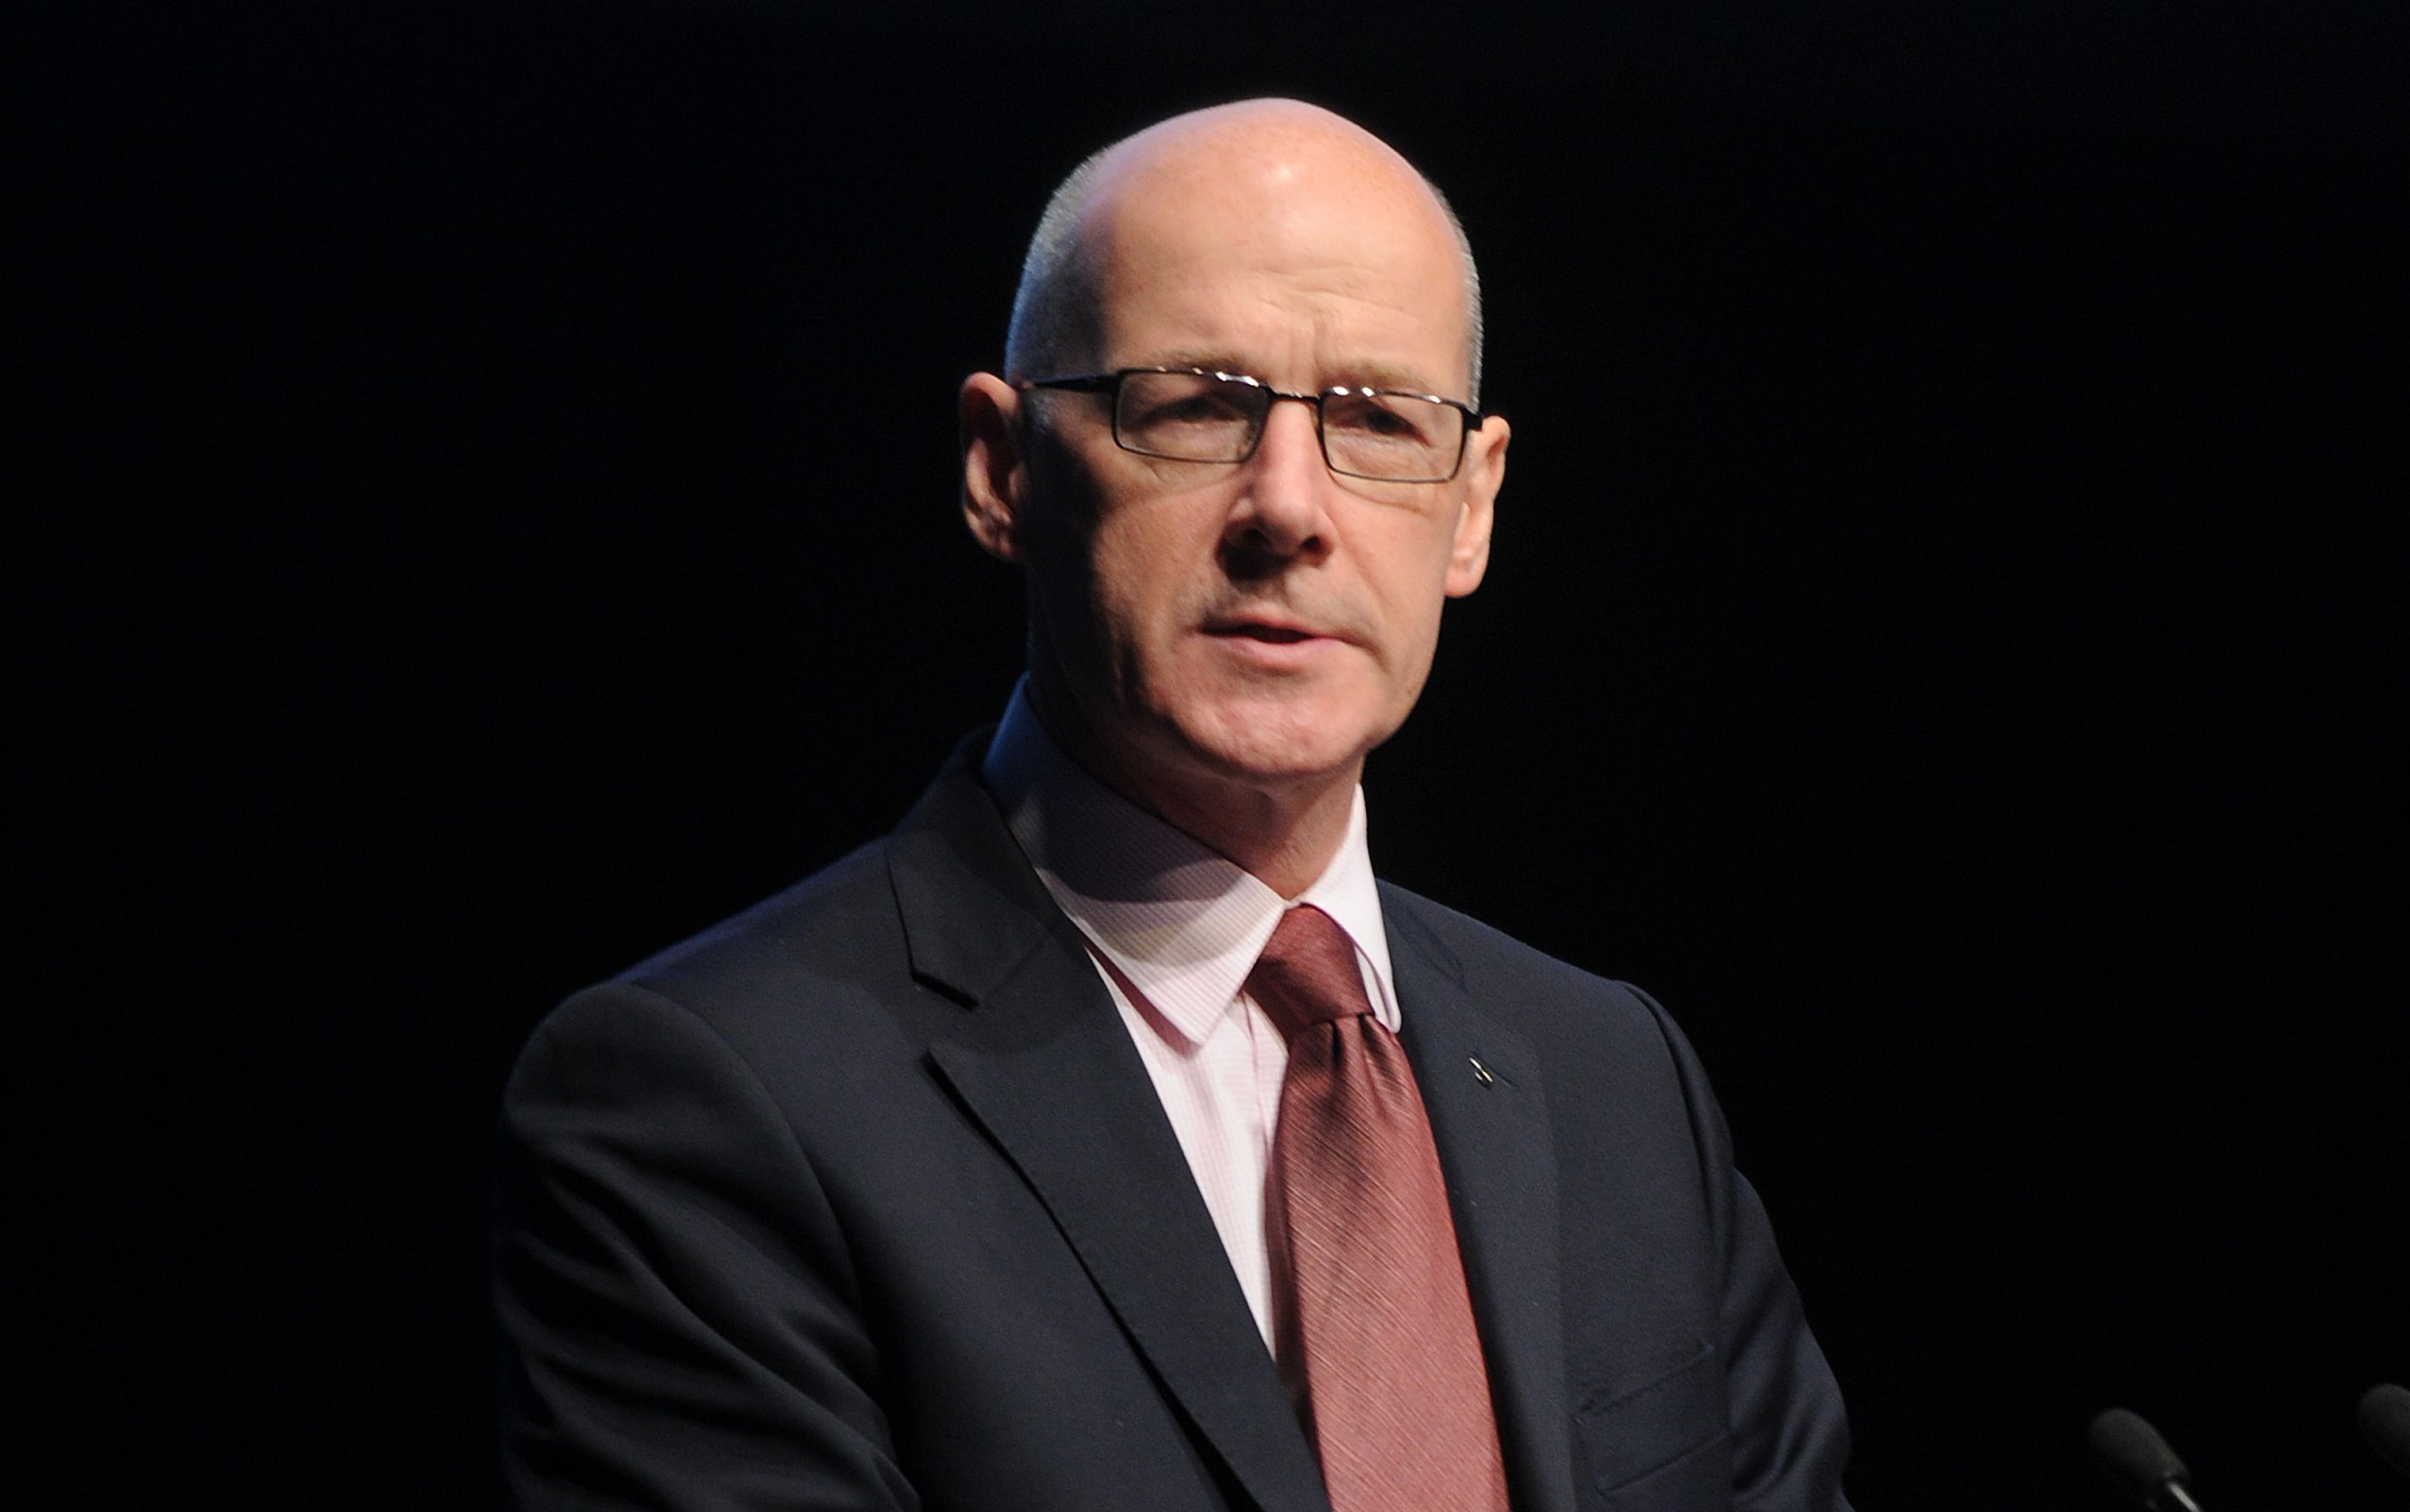 John Swinney faced a tough time as he addressed EIS delegates at the Caird Hall.